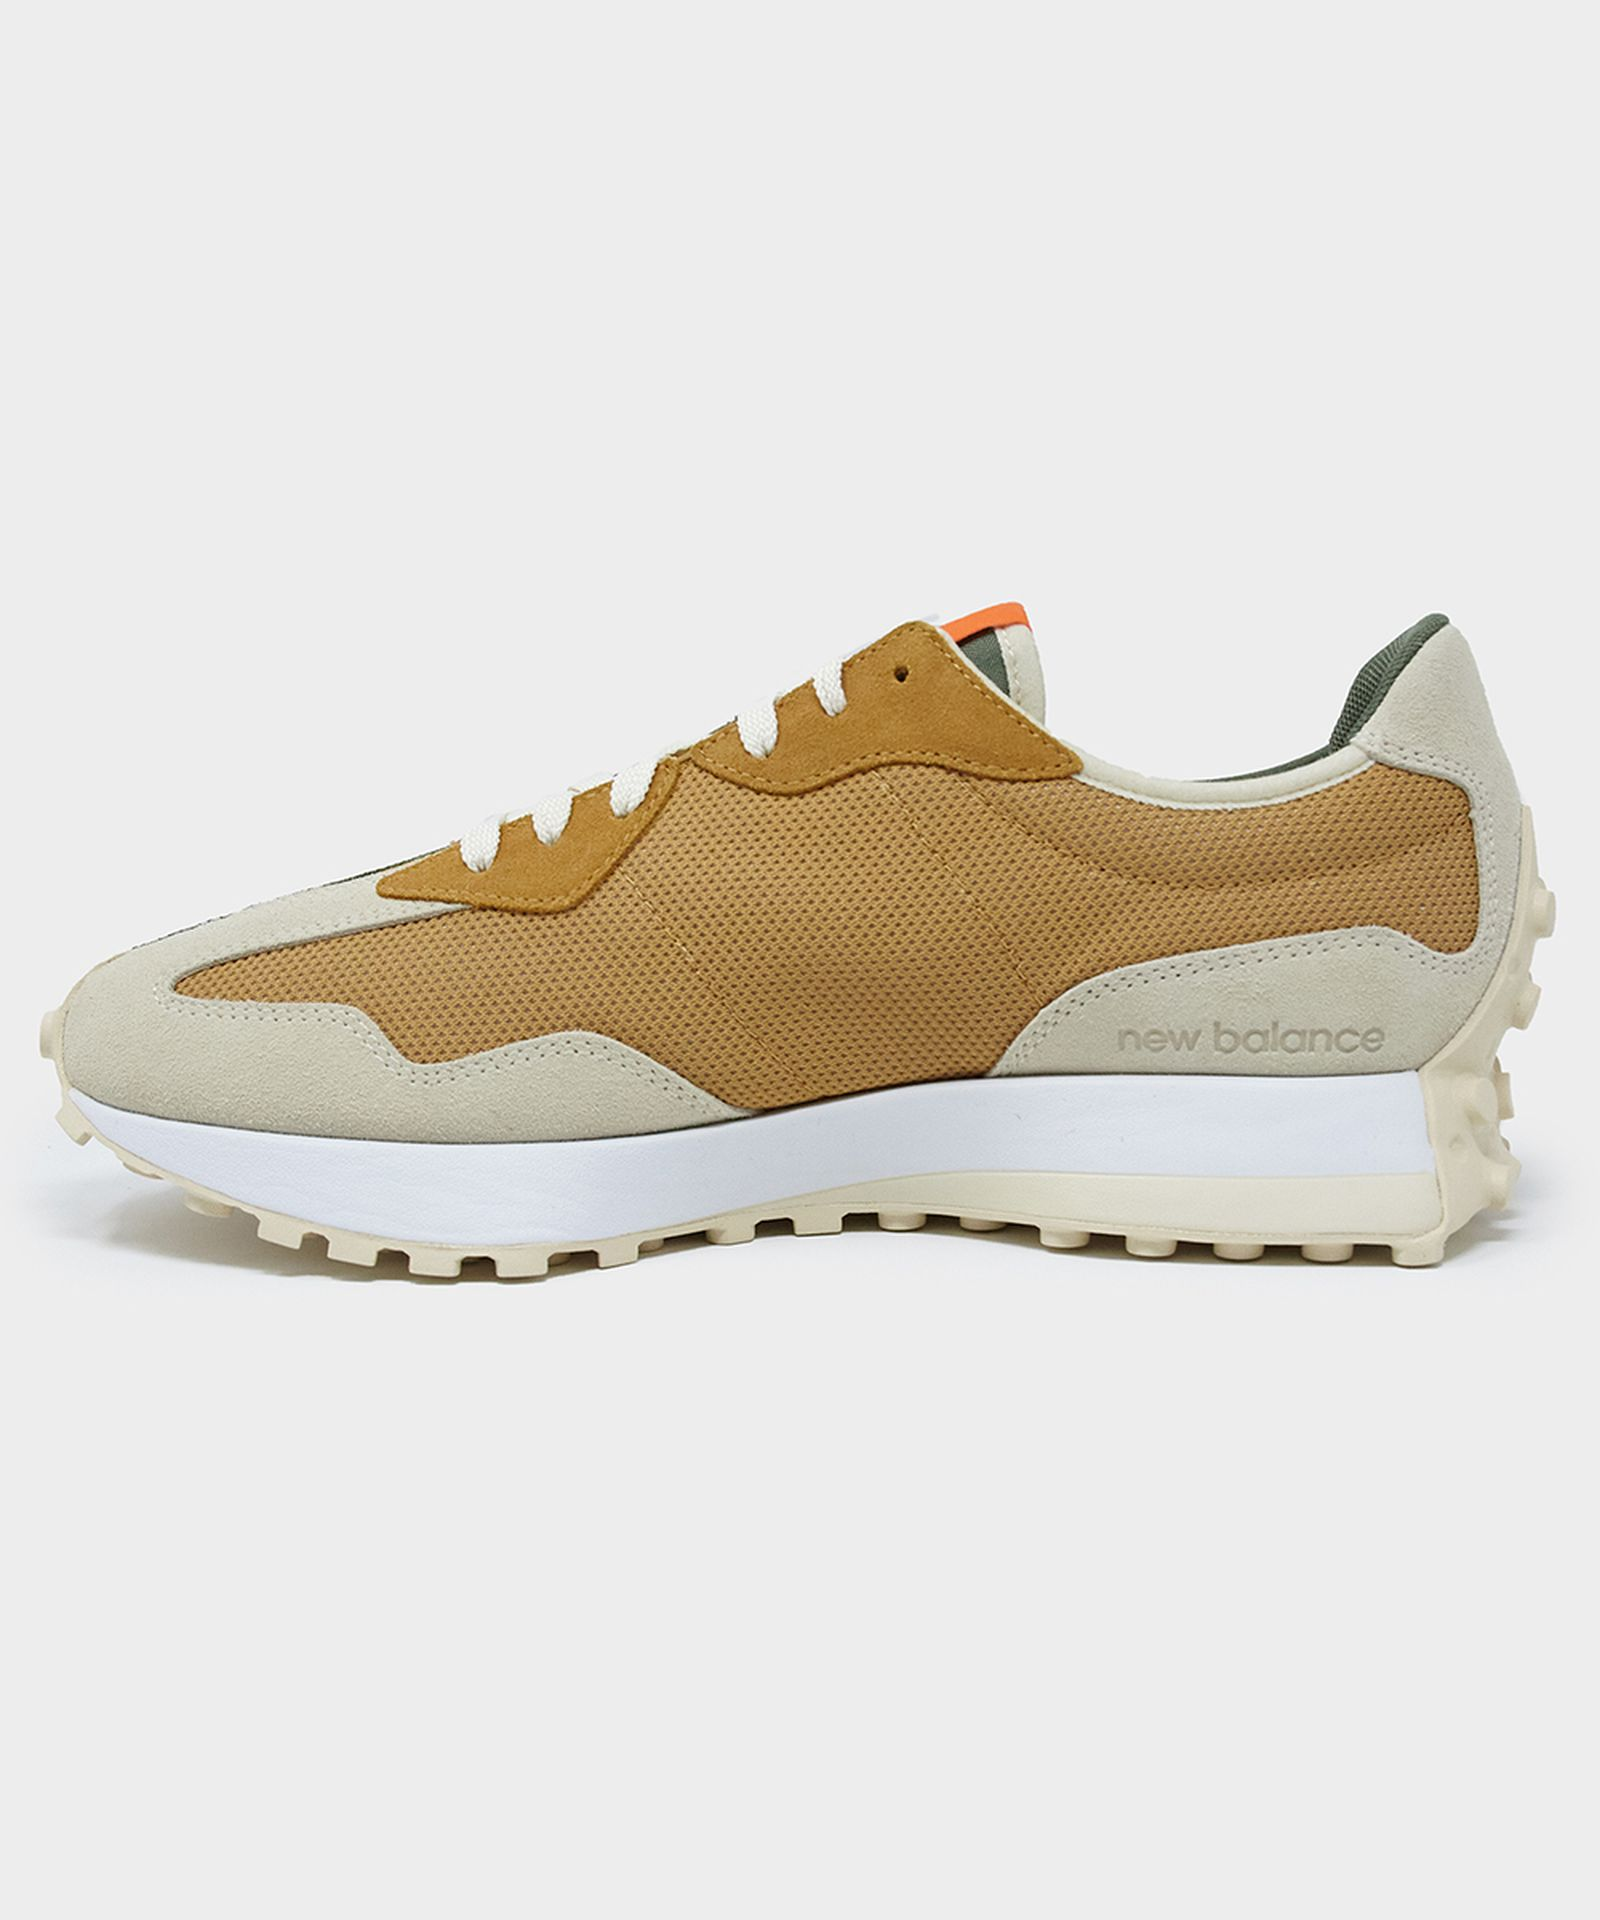 todd-snyder-new-balance-327-farmers-market-release-date-price-1-09